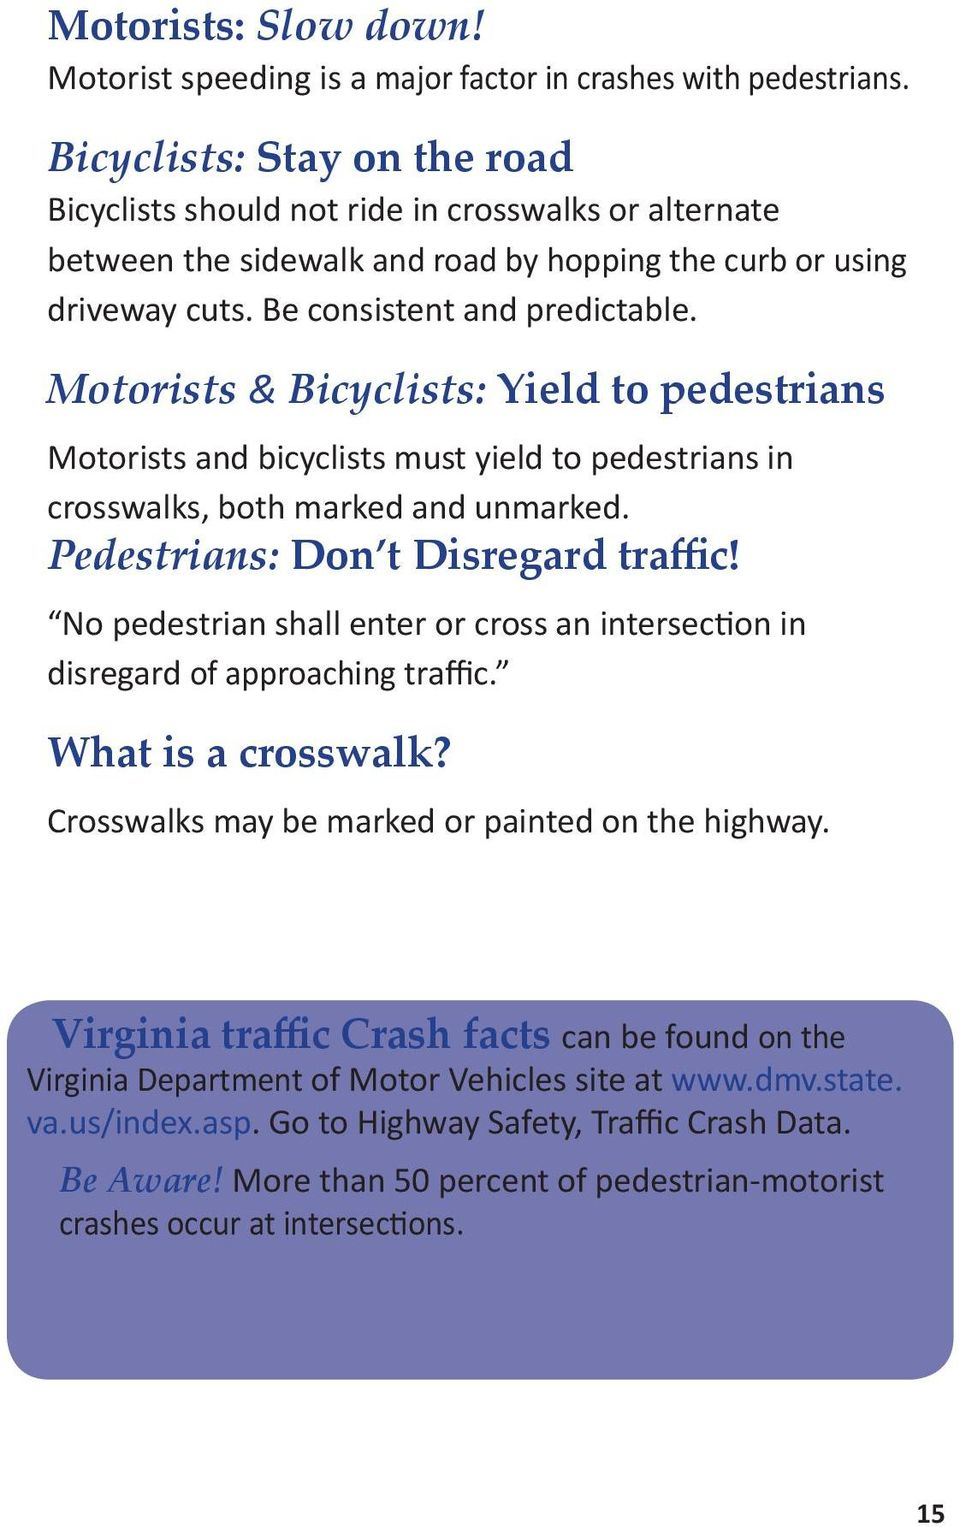 Motorists & Bicyclists: Yield to pedestrians Motorists and bicyclists must yield to pedestrians in crosswalks, both marked and unmarked. Pedestrians: Don t Disregard traffic!